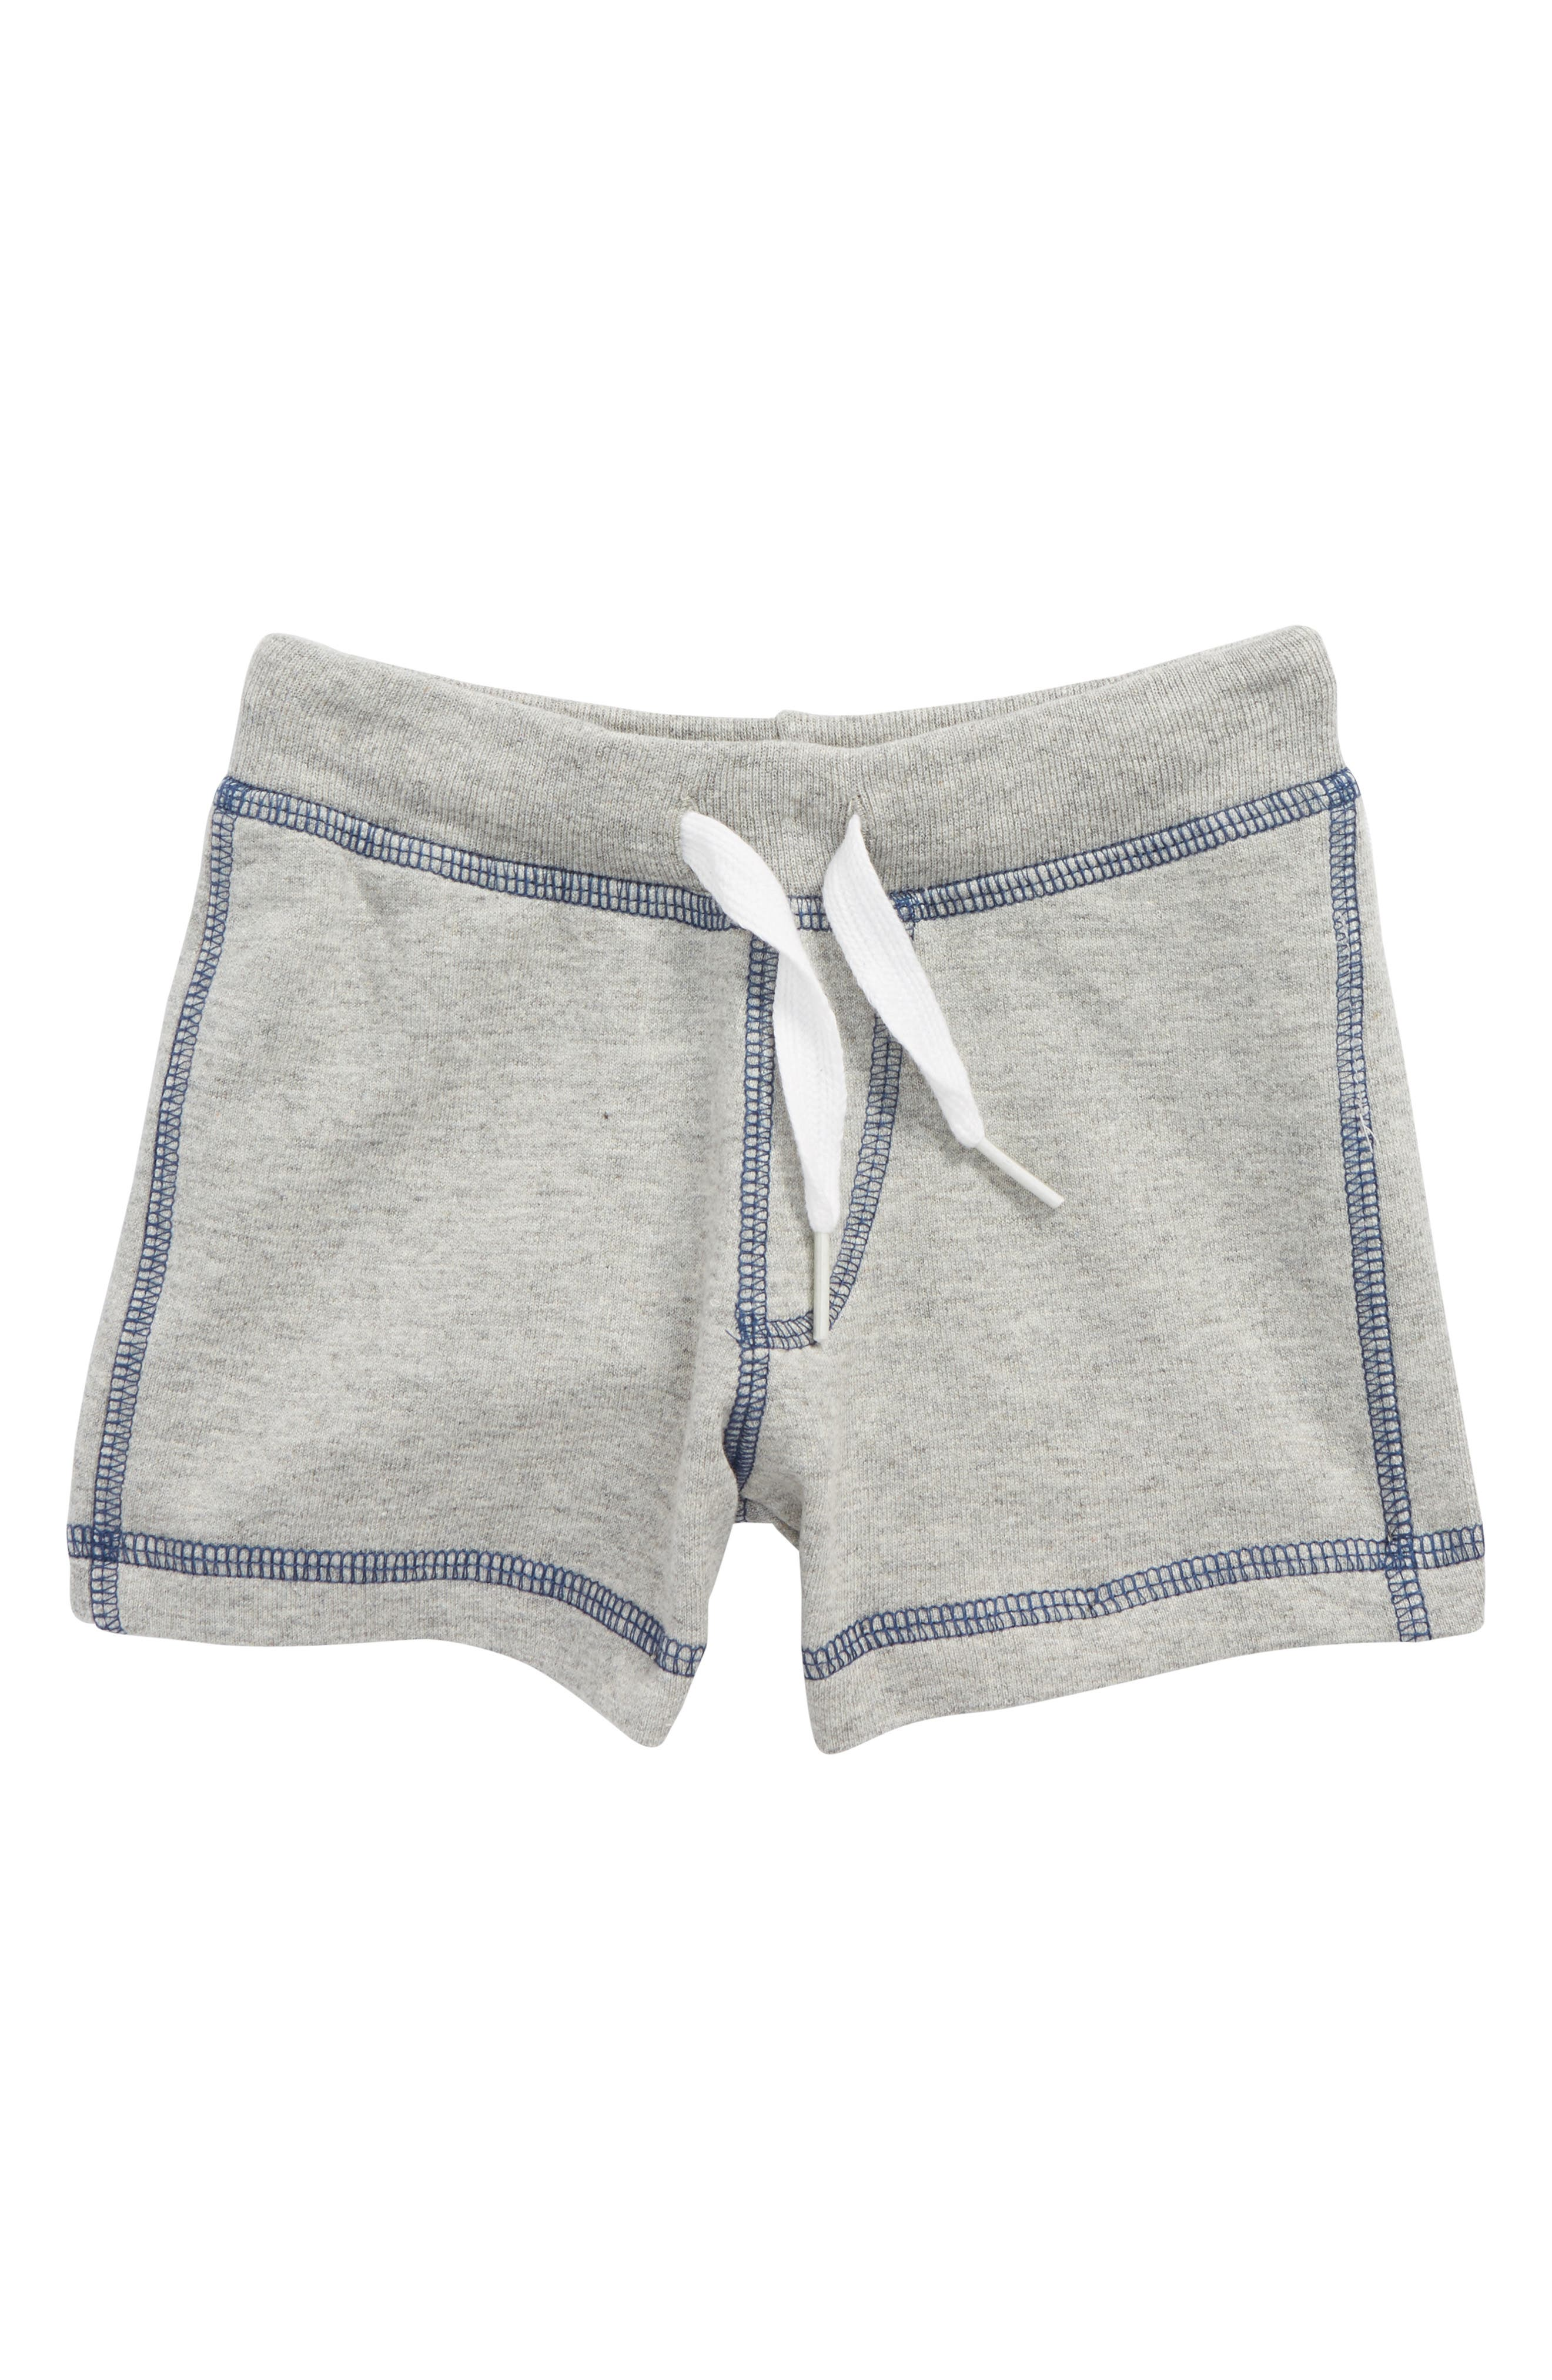 Alternate Image 1 Selected - Hatley Pull-On Shorts (Baby Boys)